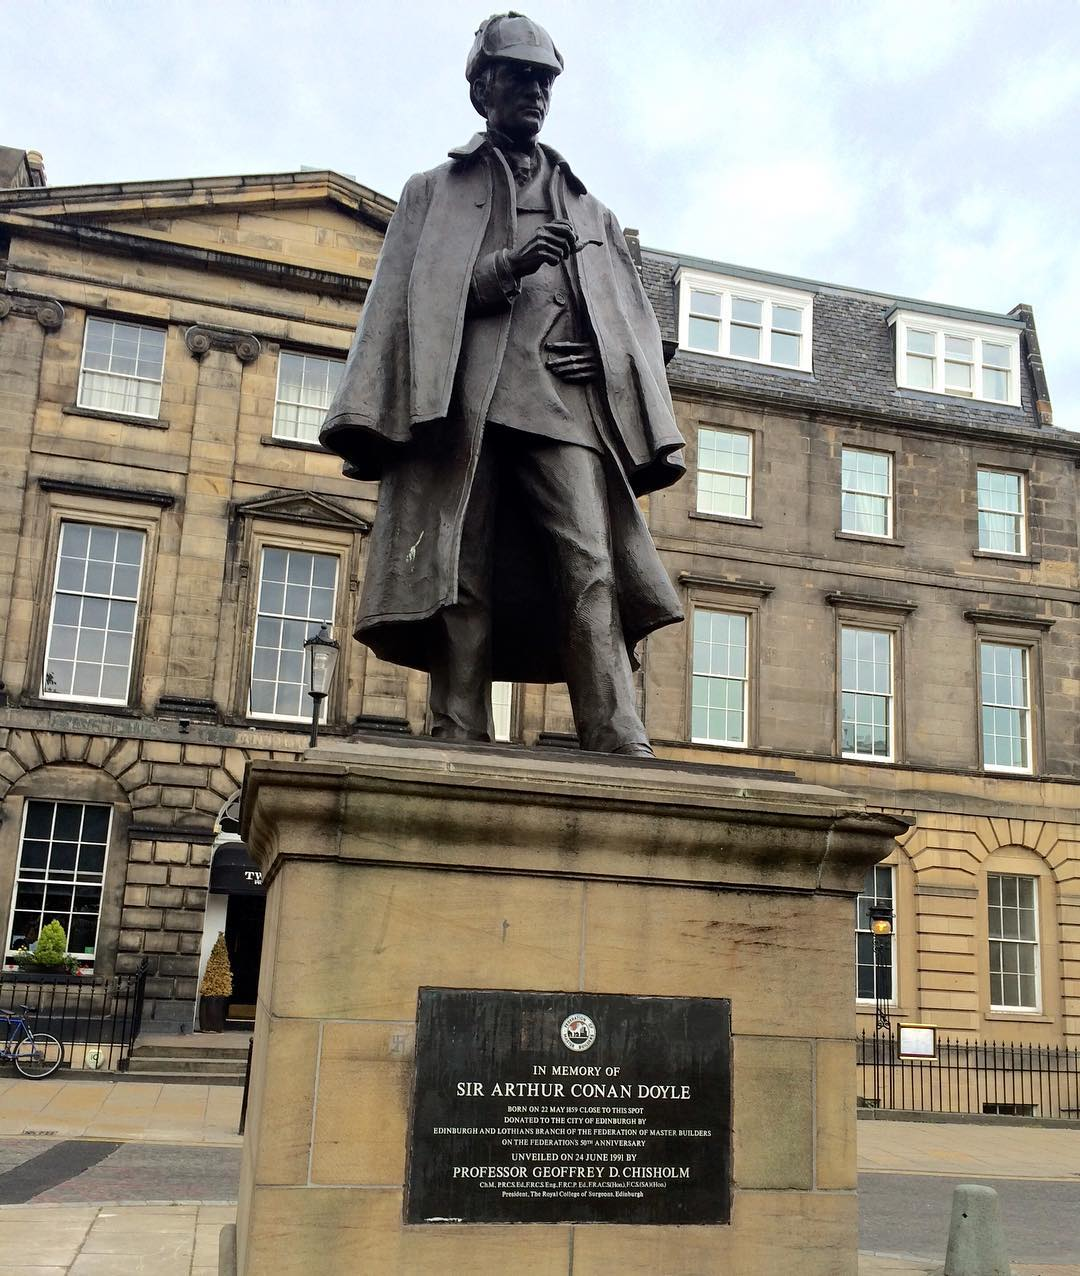 Statue of Sherlock Holmes on Picardy Place where Sir Arthurhellip